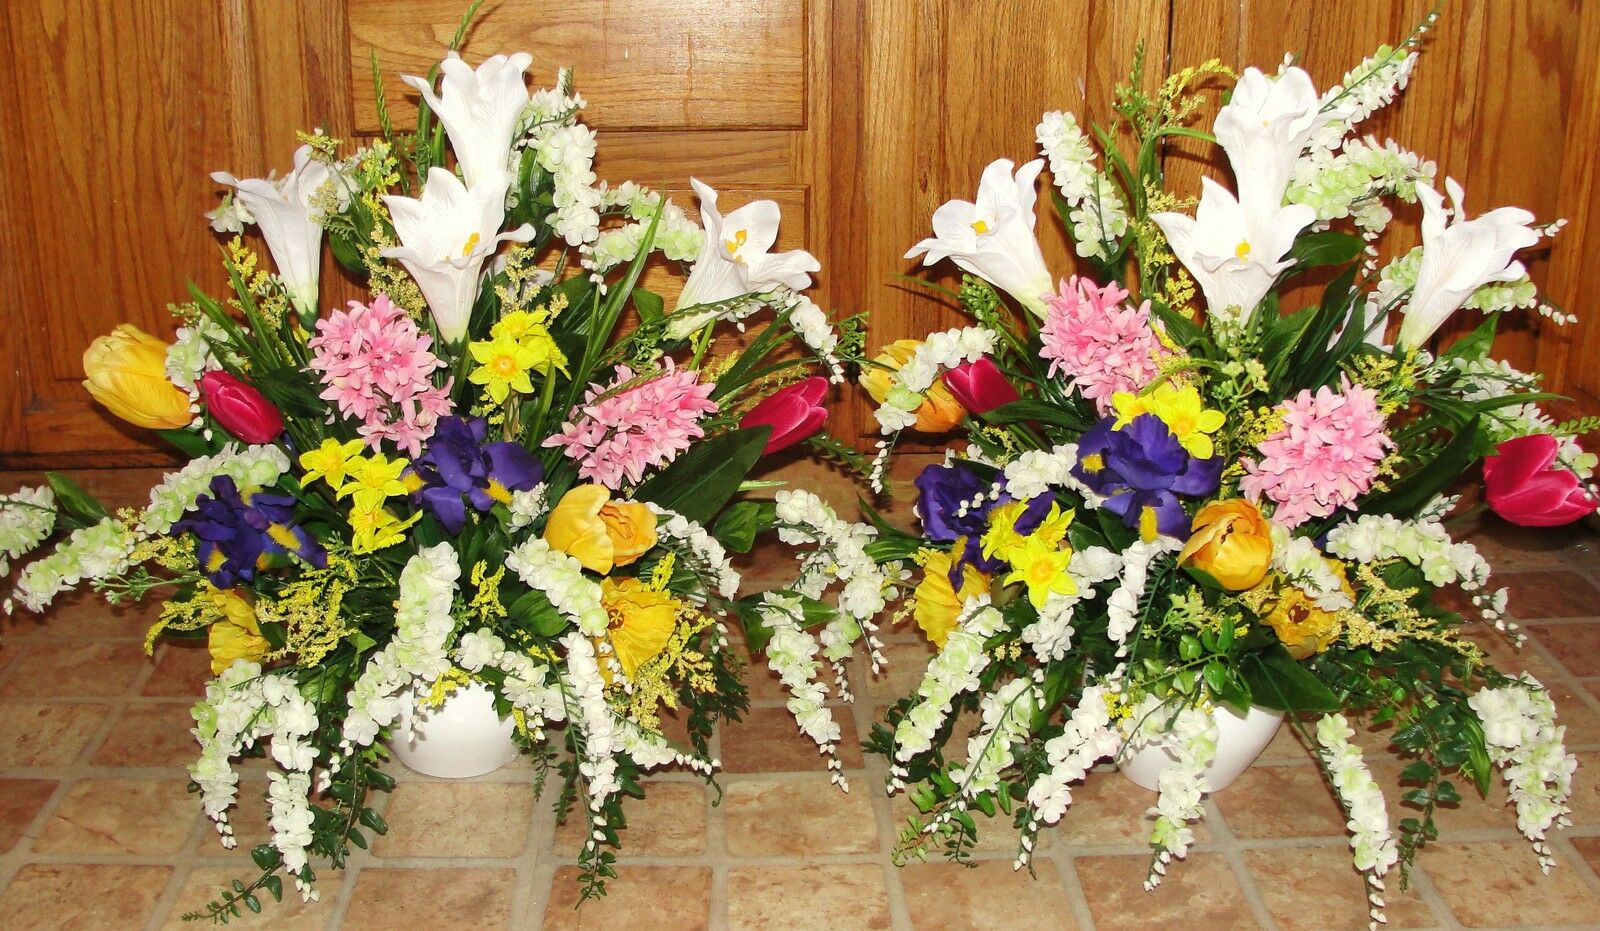 flower vases for gravestones with Spring Flower Arrangements Church Silk Wedding Altar Vases 251030546842 on panions furthermore Heart Shaped Memorial Angel besides Angel Standing With Flowers likewise Double Heart Memorial in addition Graveside Flower Vases.